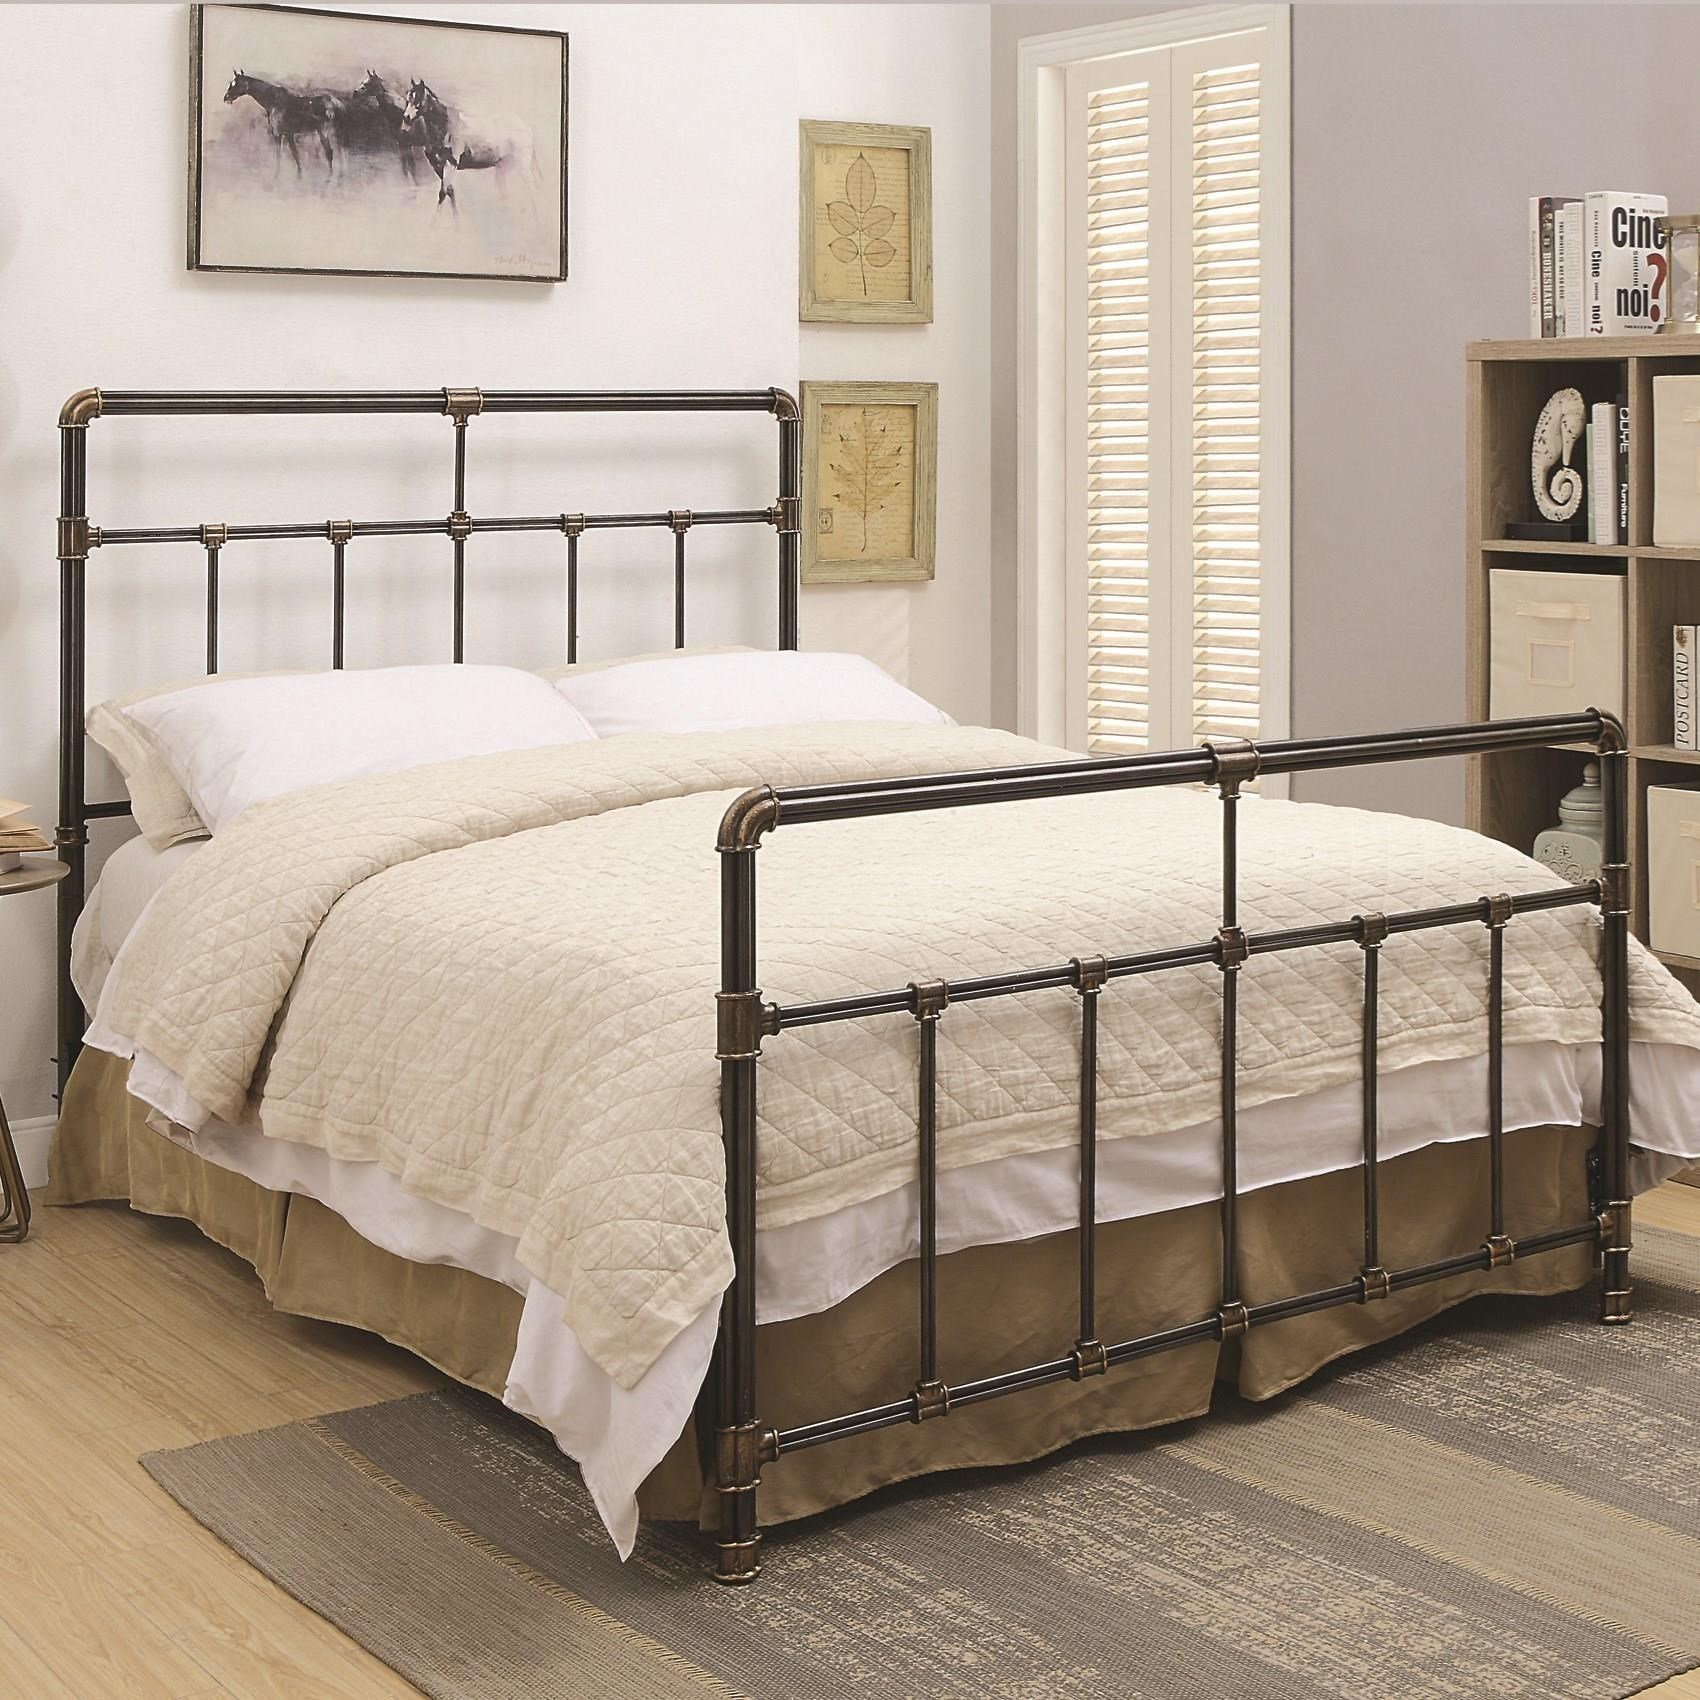 Coaster Silas Metal King Bed With Antique Brass Accents   Coaster Fine  Furniture